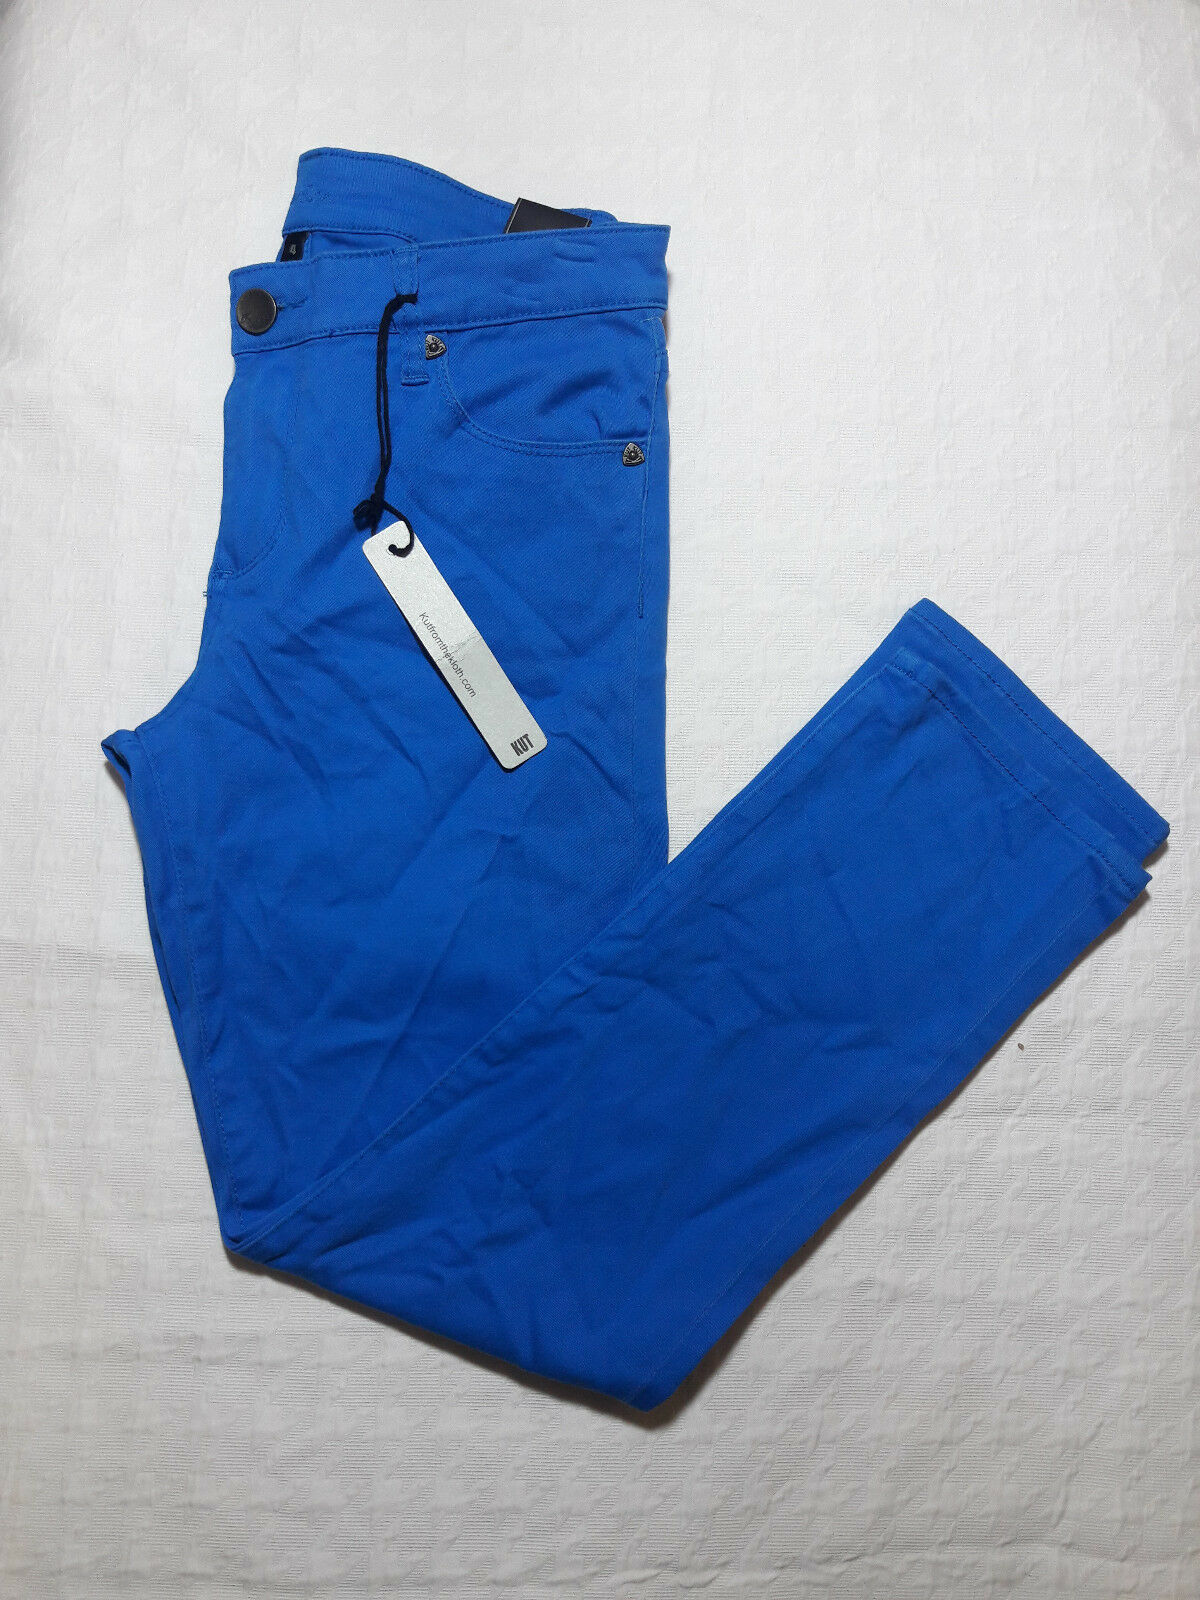 79 Kut from Kloth, Reese Ankle Straight Leg Jeans, KP384MF4, Victoria bluee, 4